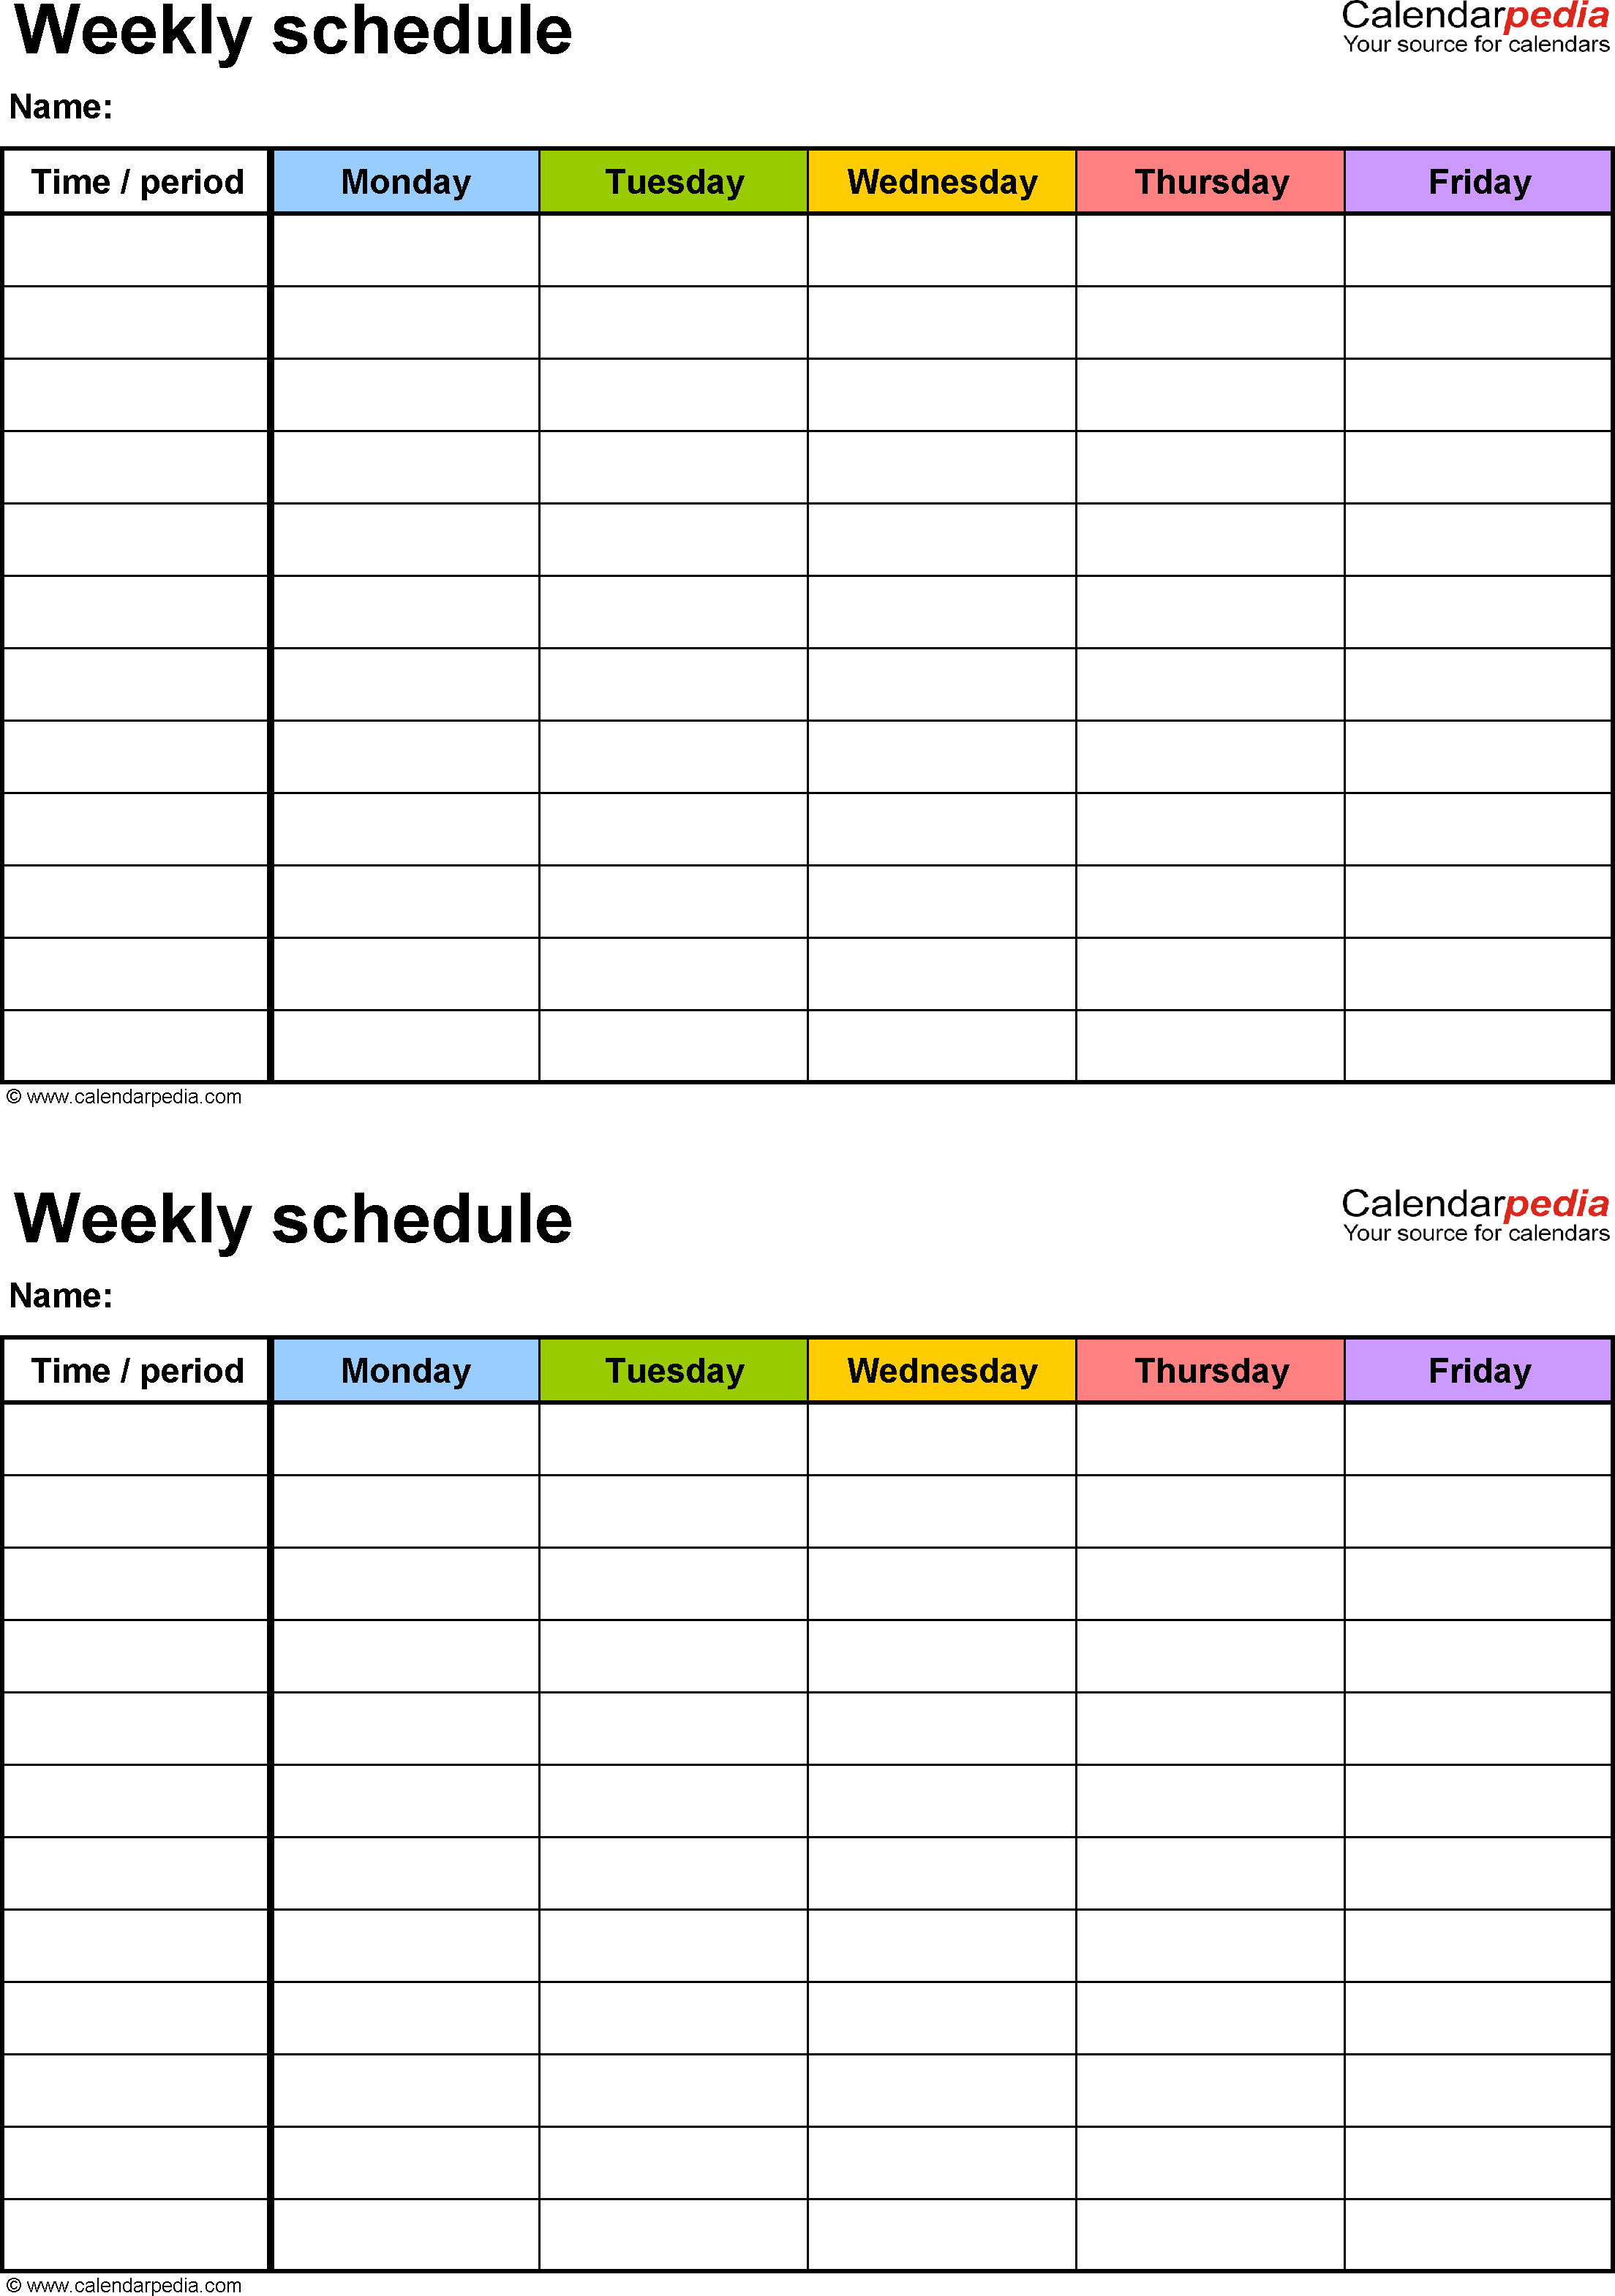 Free Weekly Schedule Templates For Word - 18 Templates for Monday - Sunday Calendar Template